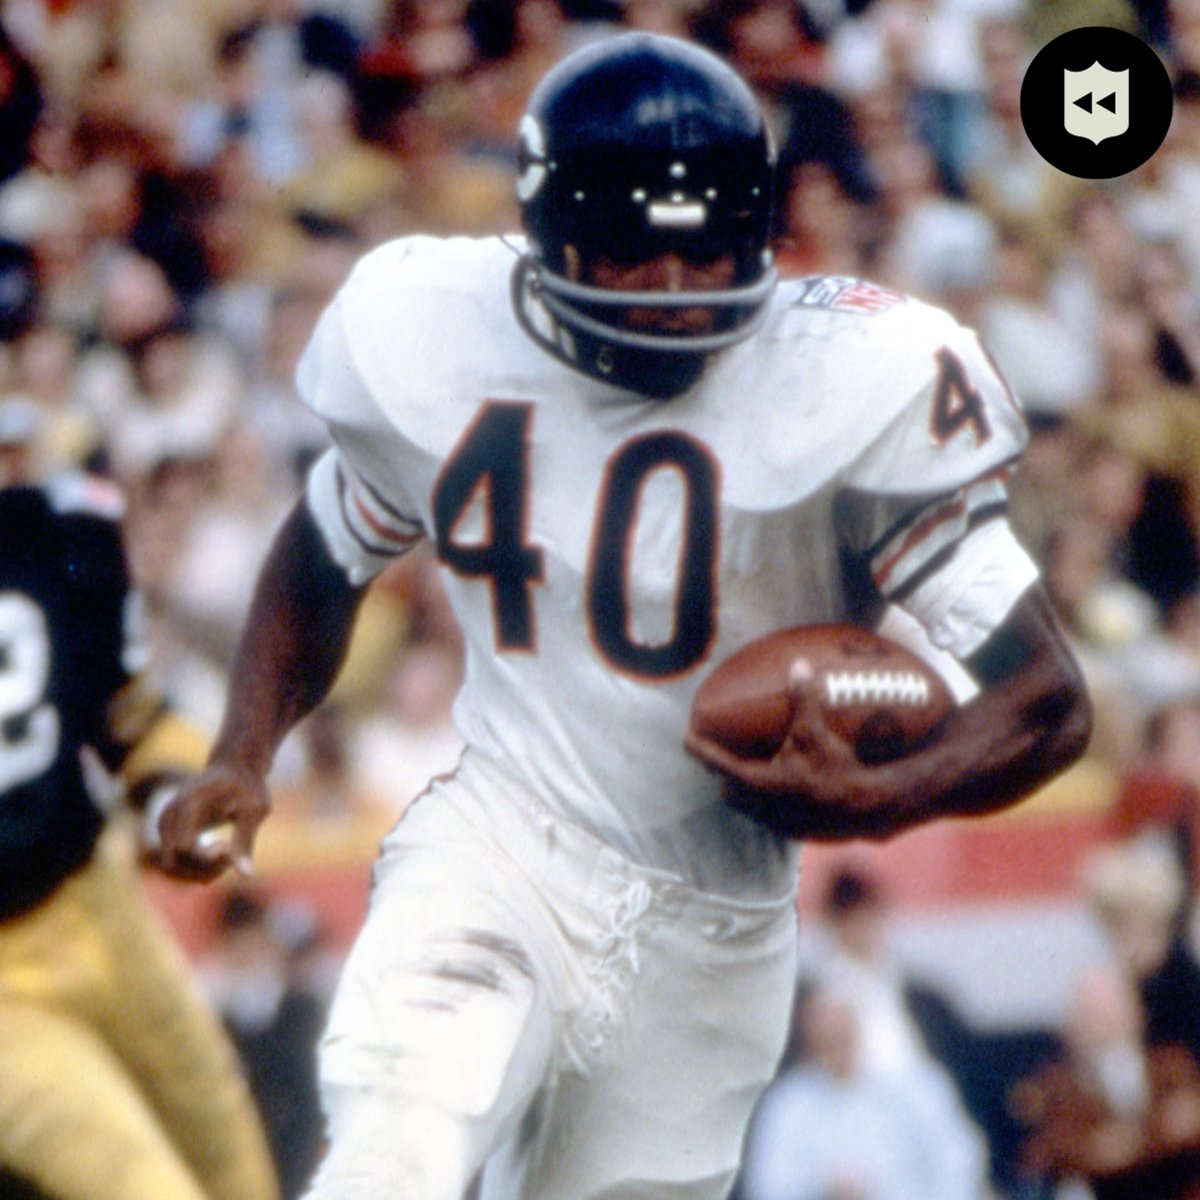 Wishing @ChicagoBears legend Gale Sayers a happy 77th birthday! 🎂 https://t.co/ZWQcwK32nl